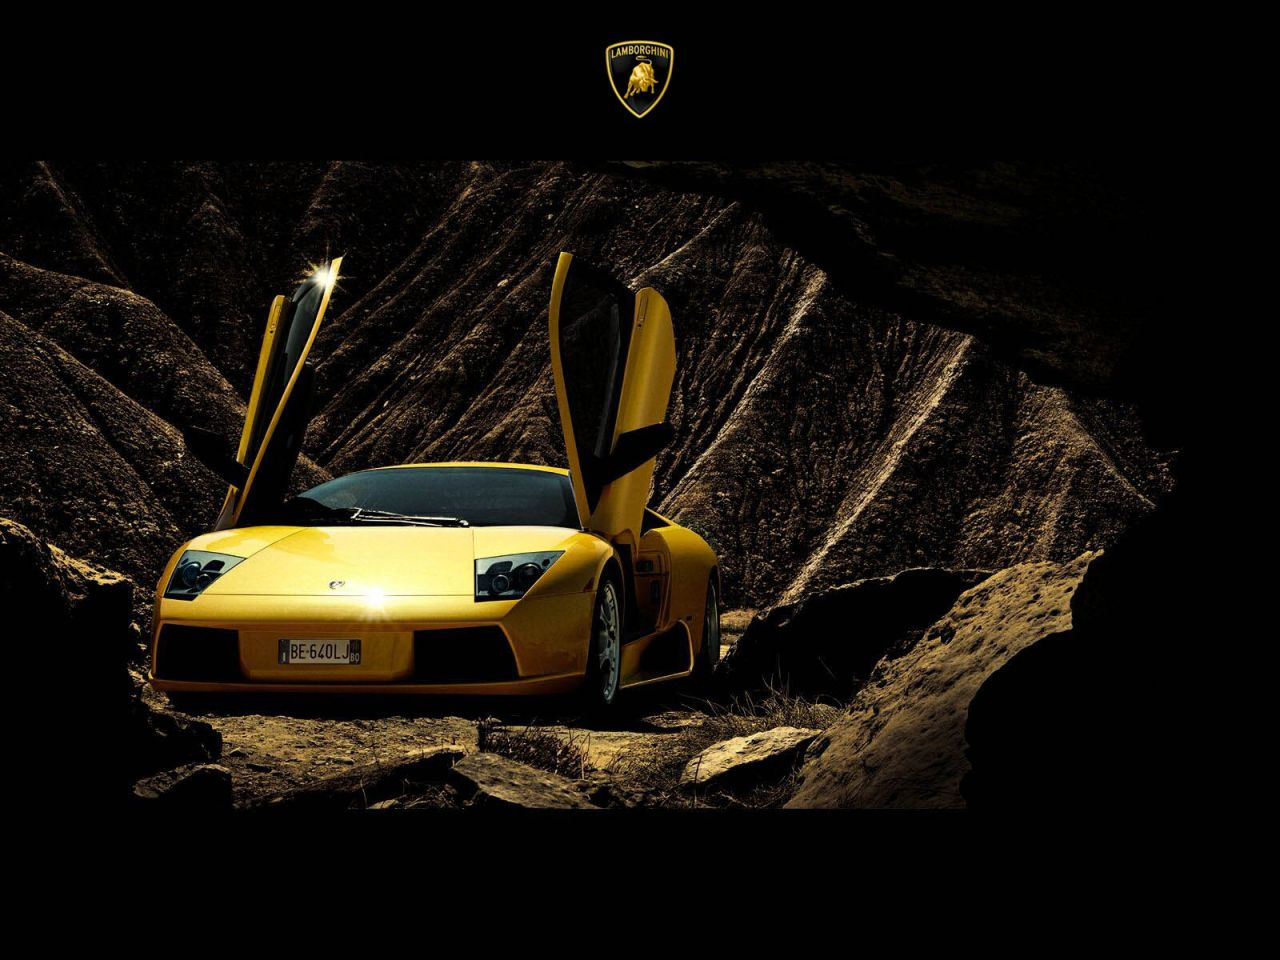 Murcielago Yellow Front View From Cave Wallpaper 1280x960